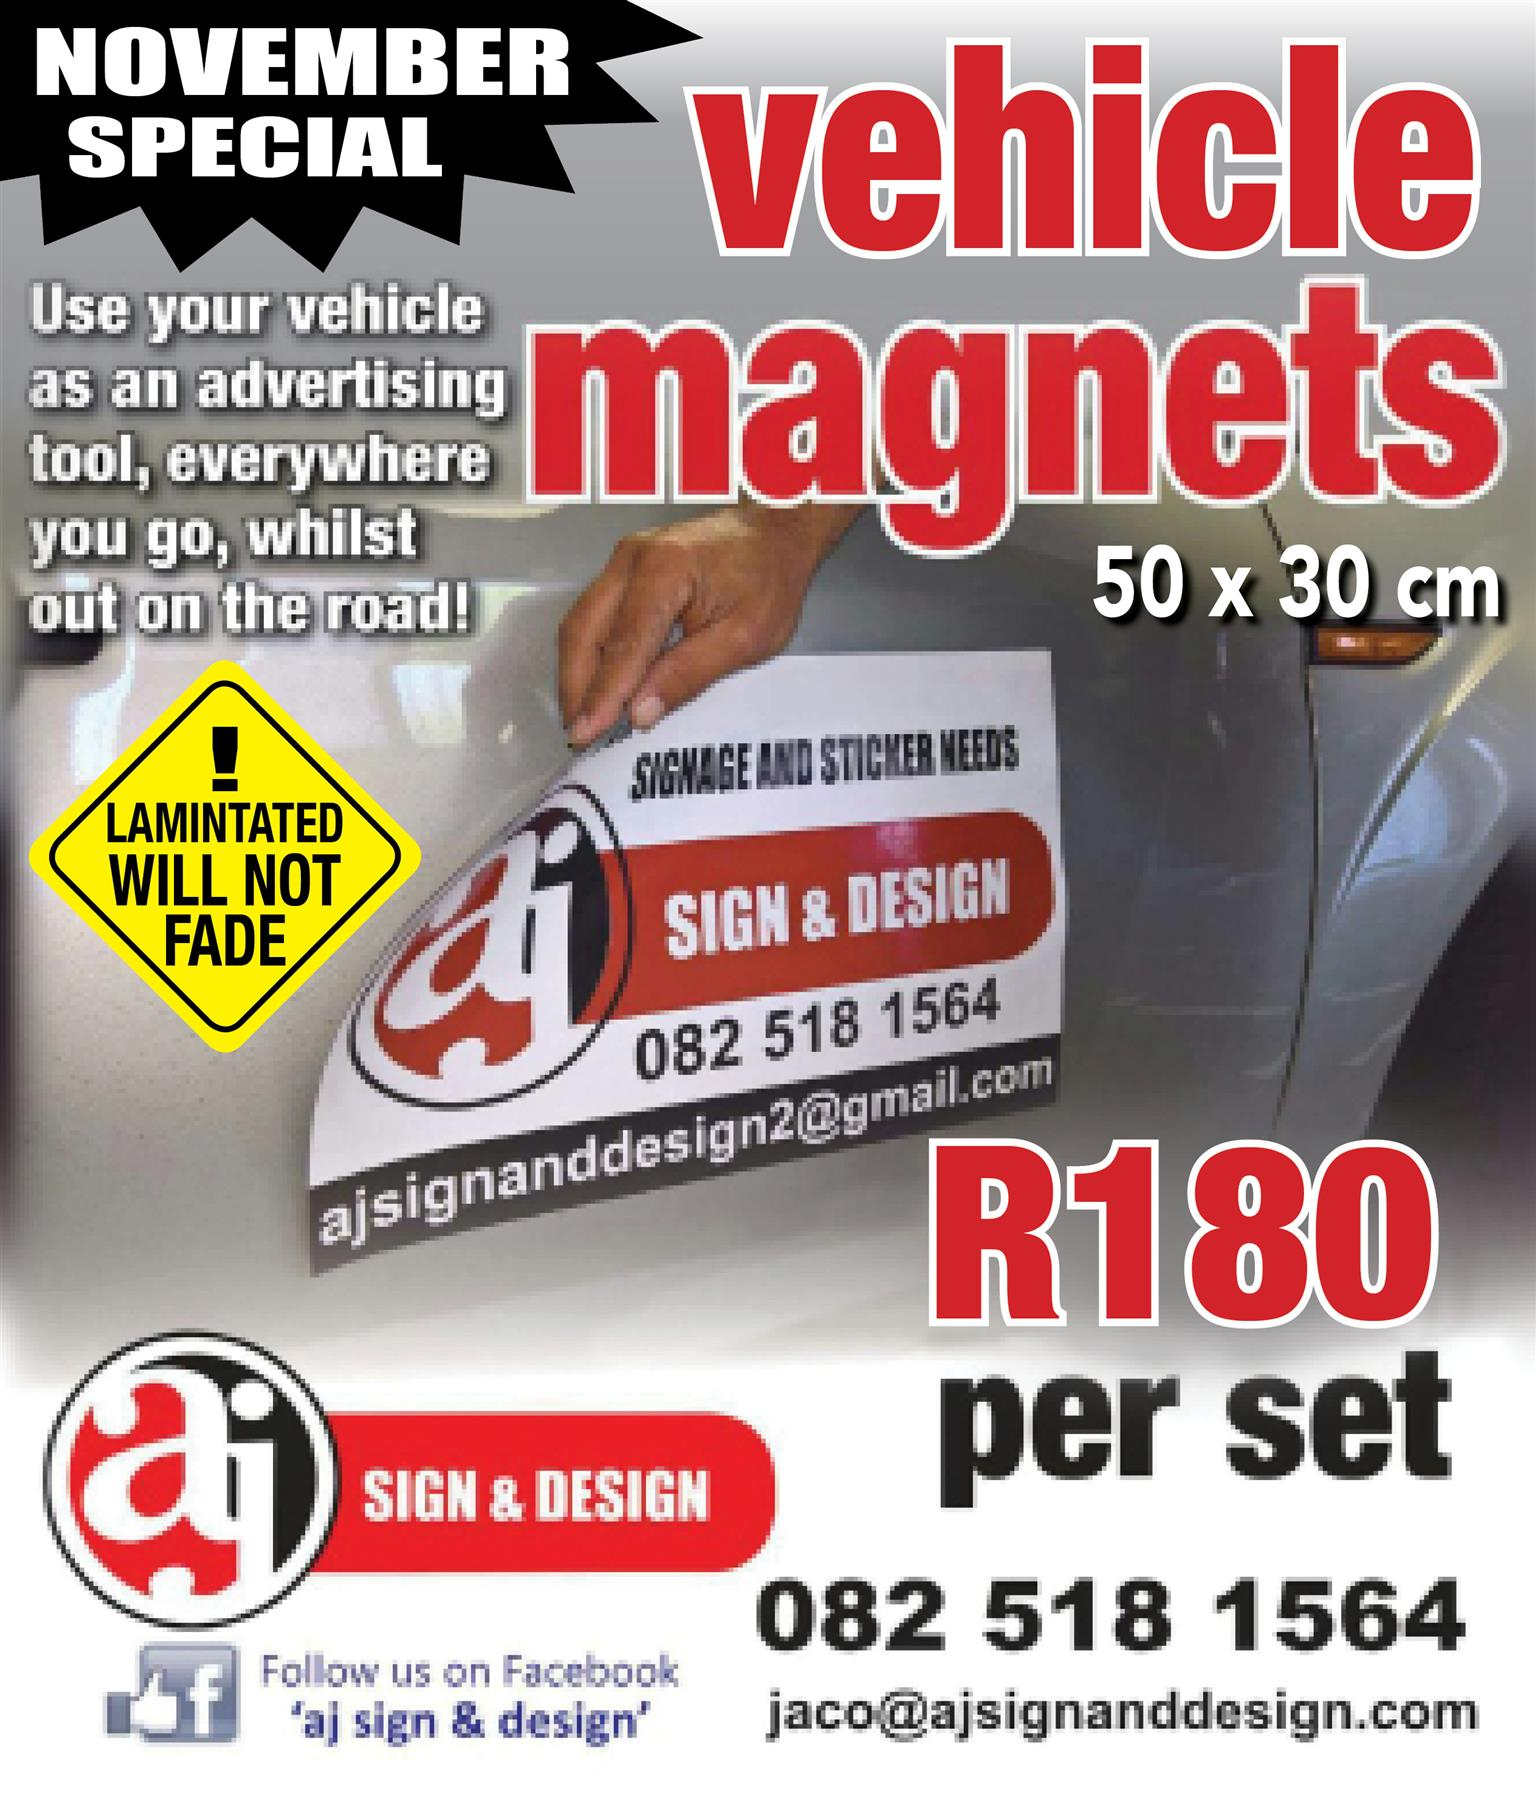 VEHICLE MAGNETS - ADVERTISE ON THE GO - NOVEMBER SPECIAL (/while stock lasts)